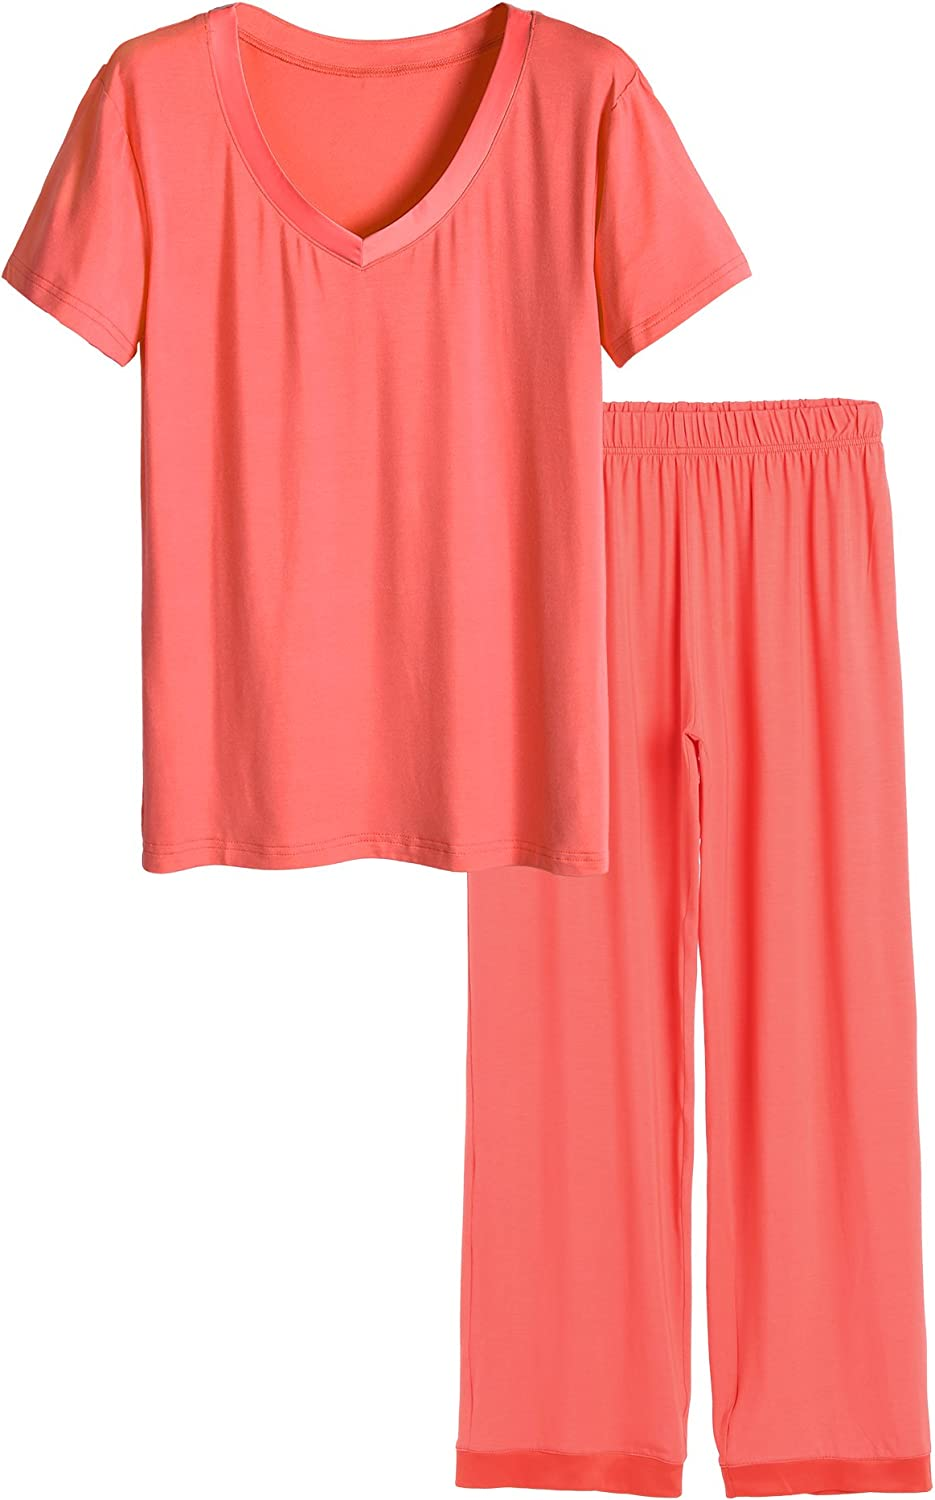 Latuza Women's V-neck Sleepwear Short Pants Paj with Special Campaign Challenge the lowest price Sleeves Top